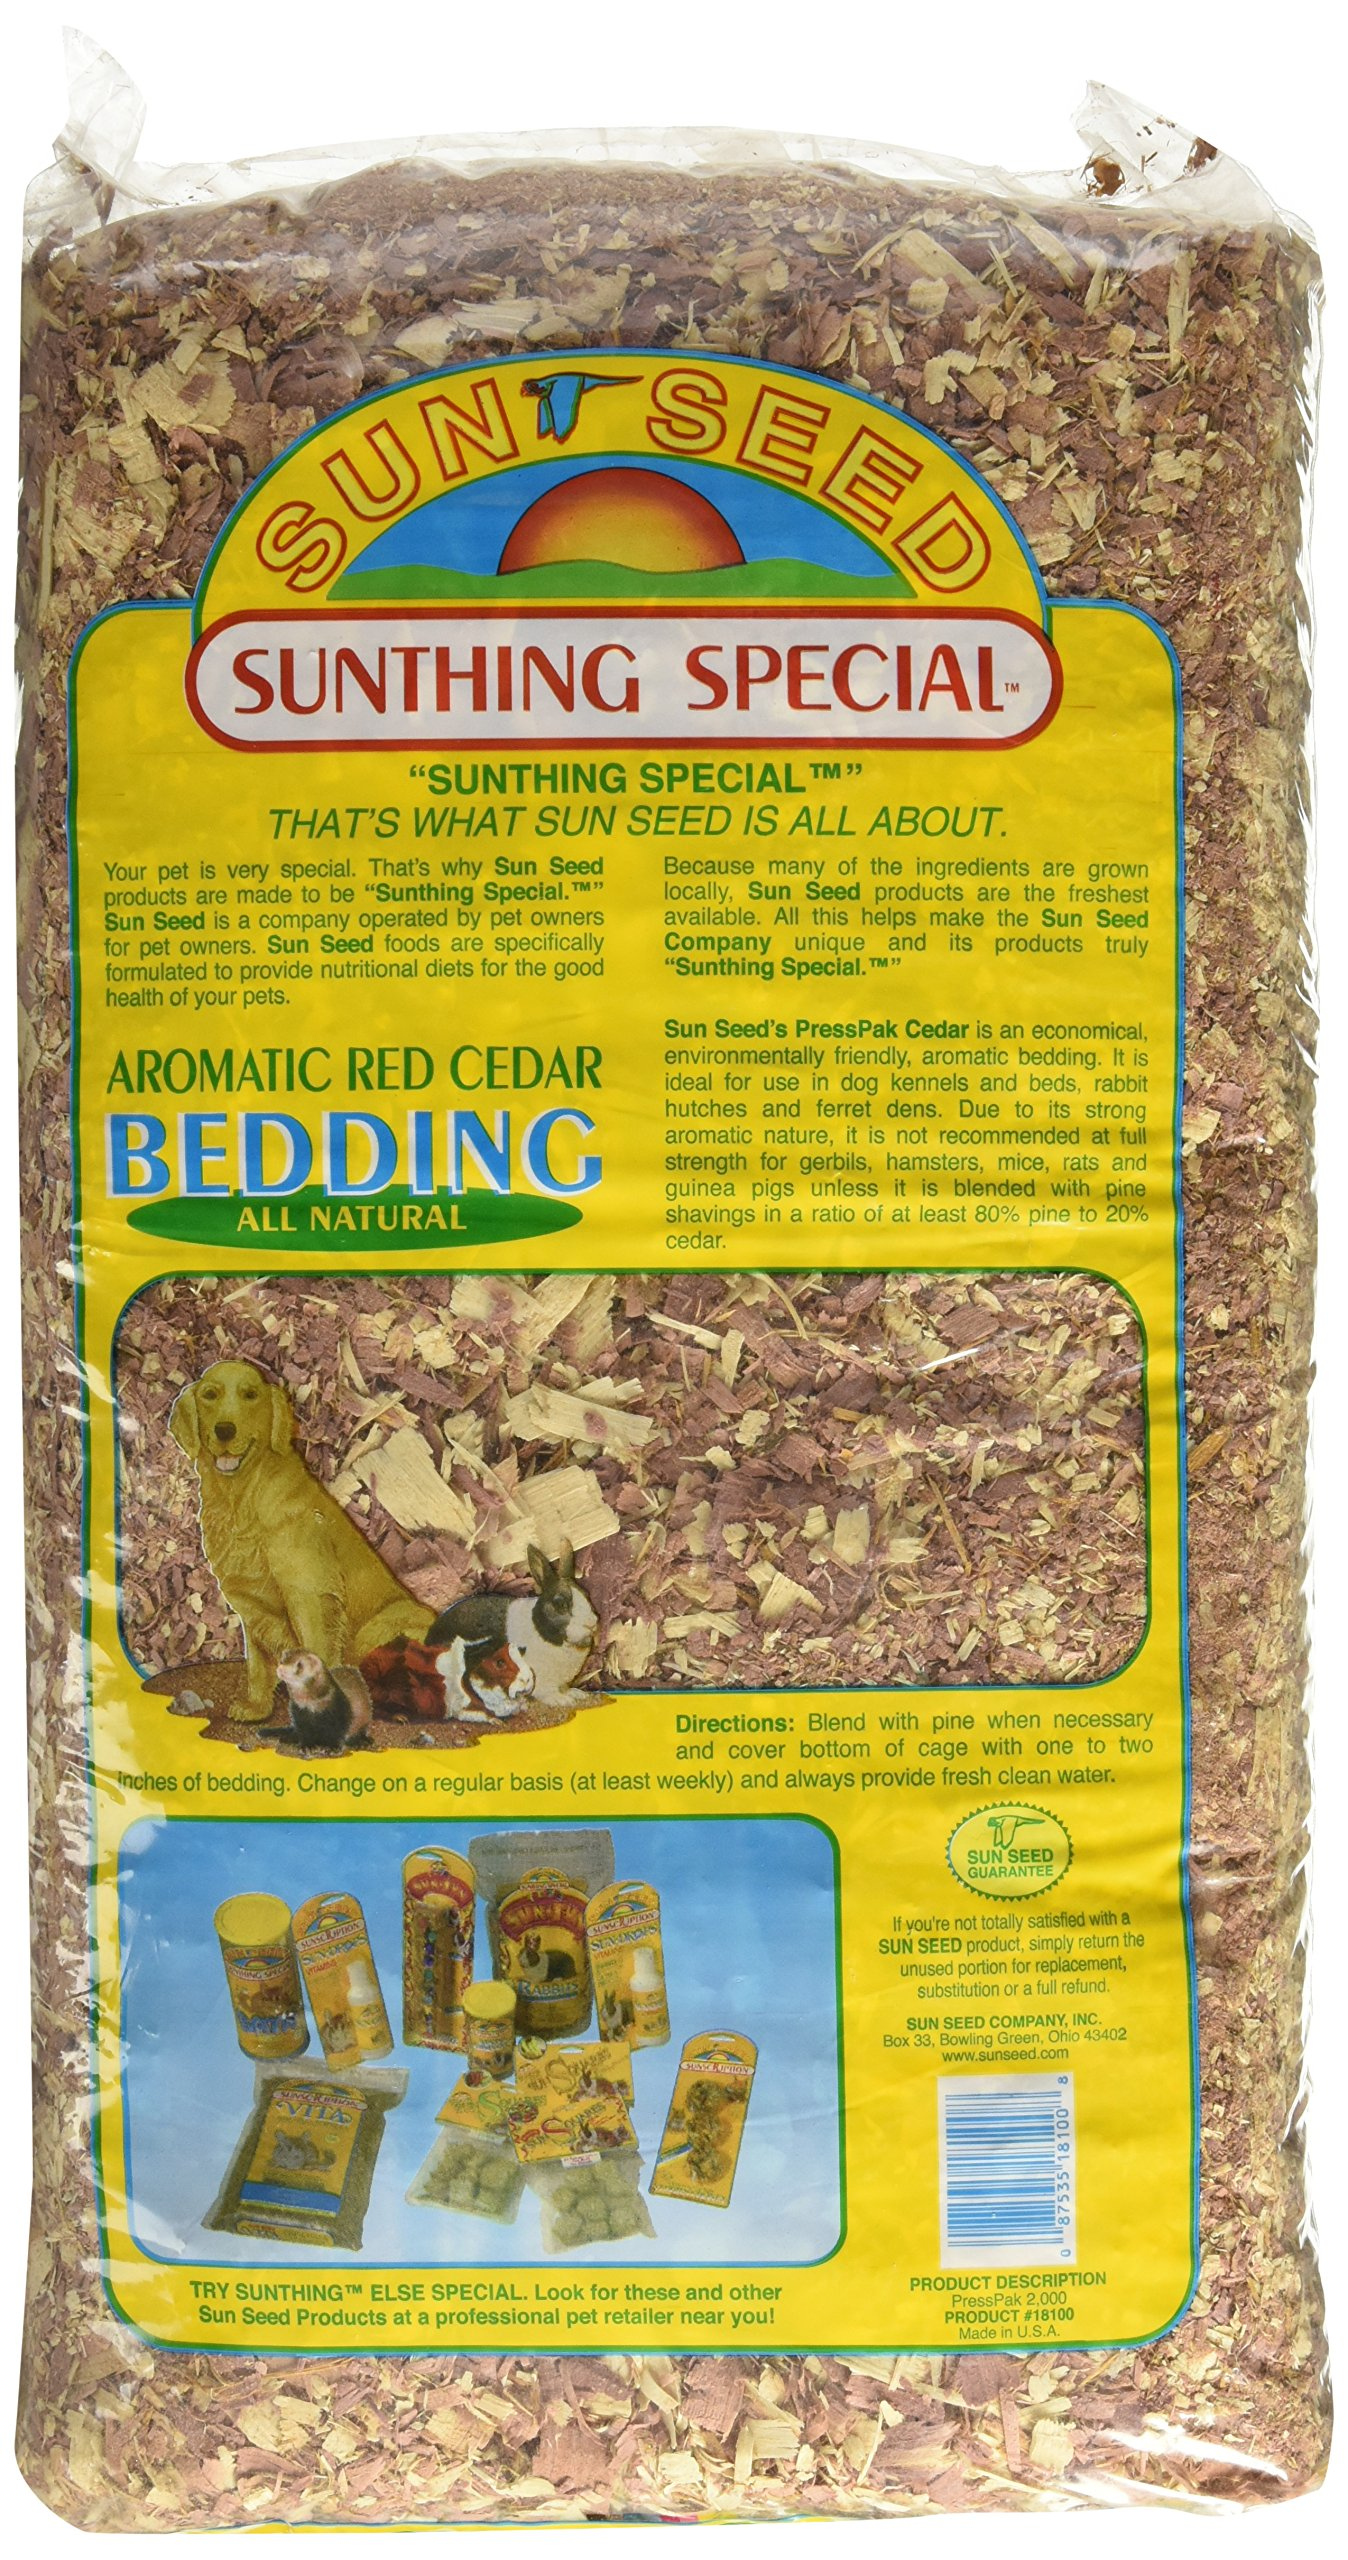 Sun Seed Company SSS18100 6-Pack Aromatic Red Cedar Press Pack Small Animal Bedding, 1200 Cubic Inch